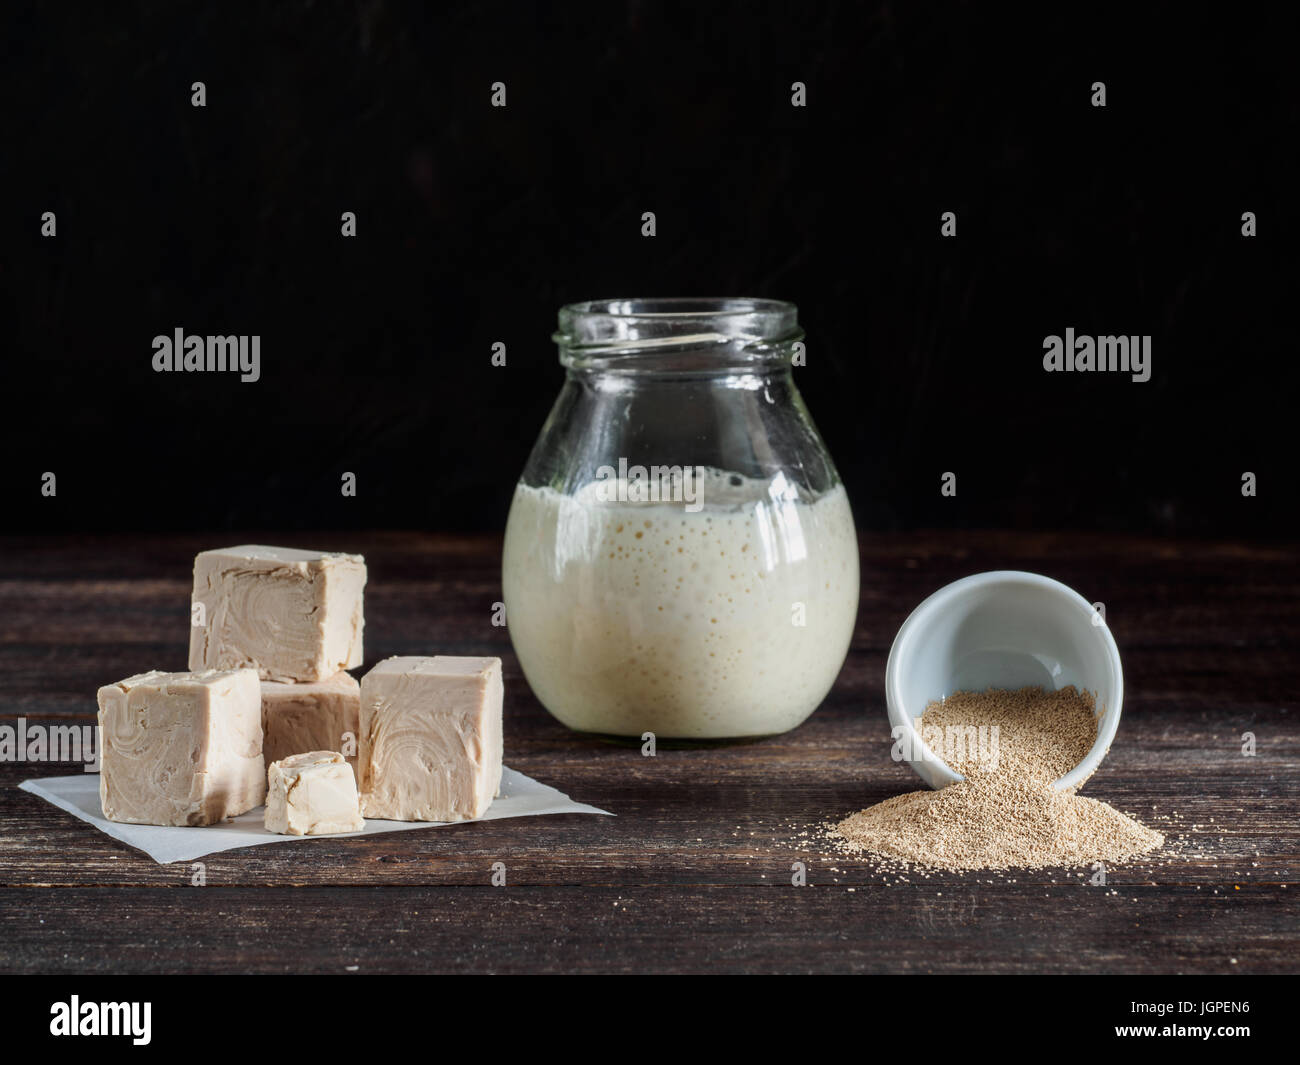 Different types yeast. Fresh pressed yeast, dry instant yeast and active wheat sourdough starter (wild yeast) on - Stock Image